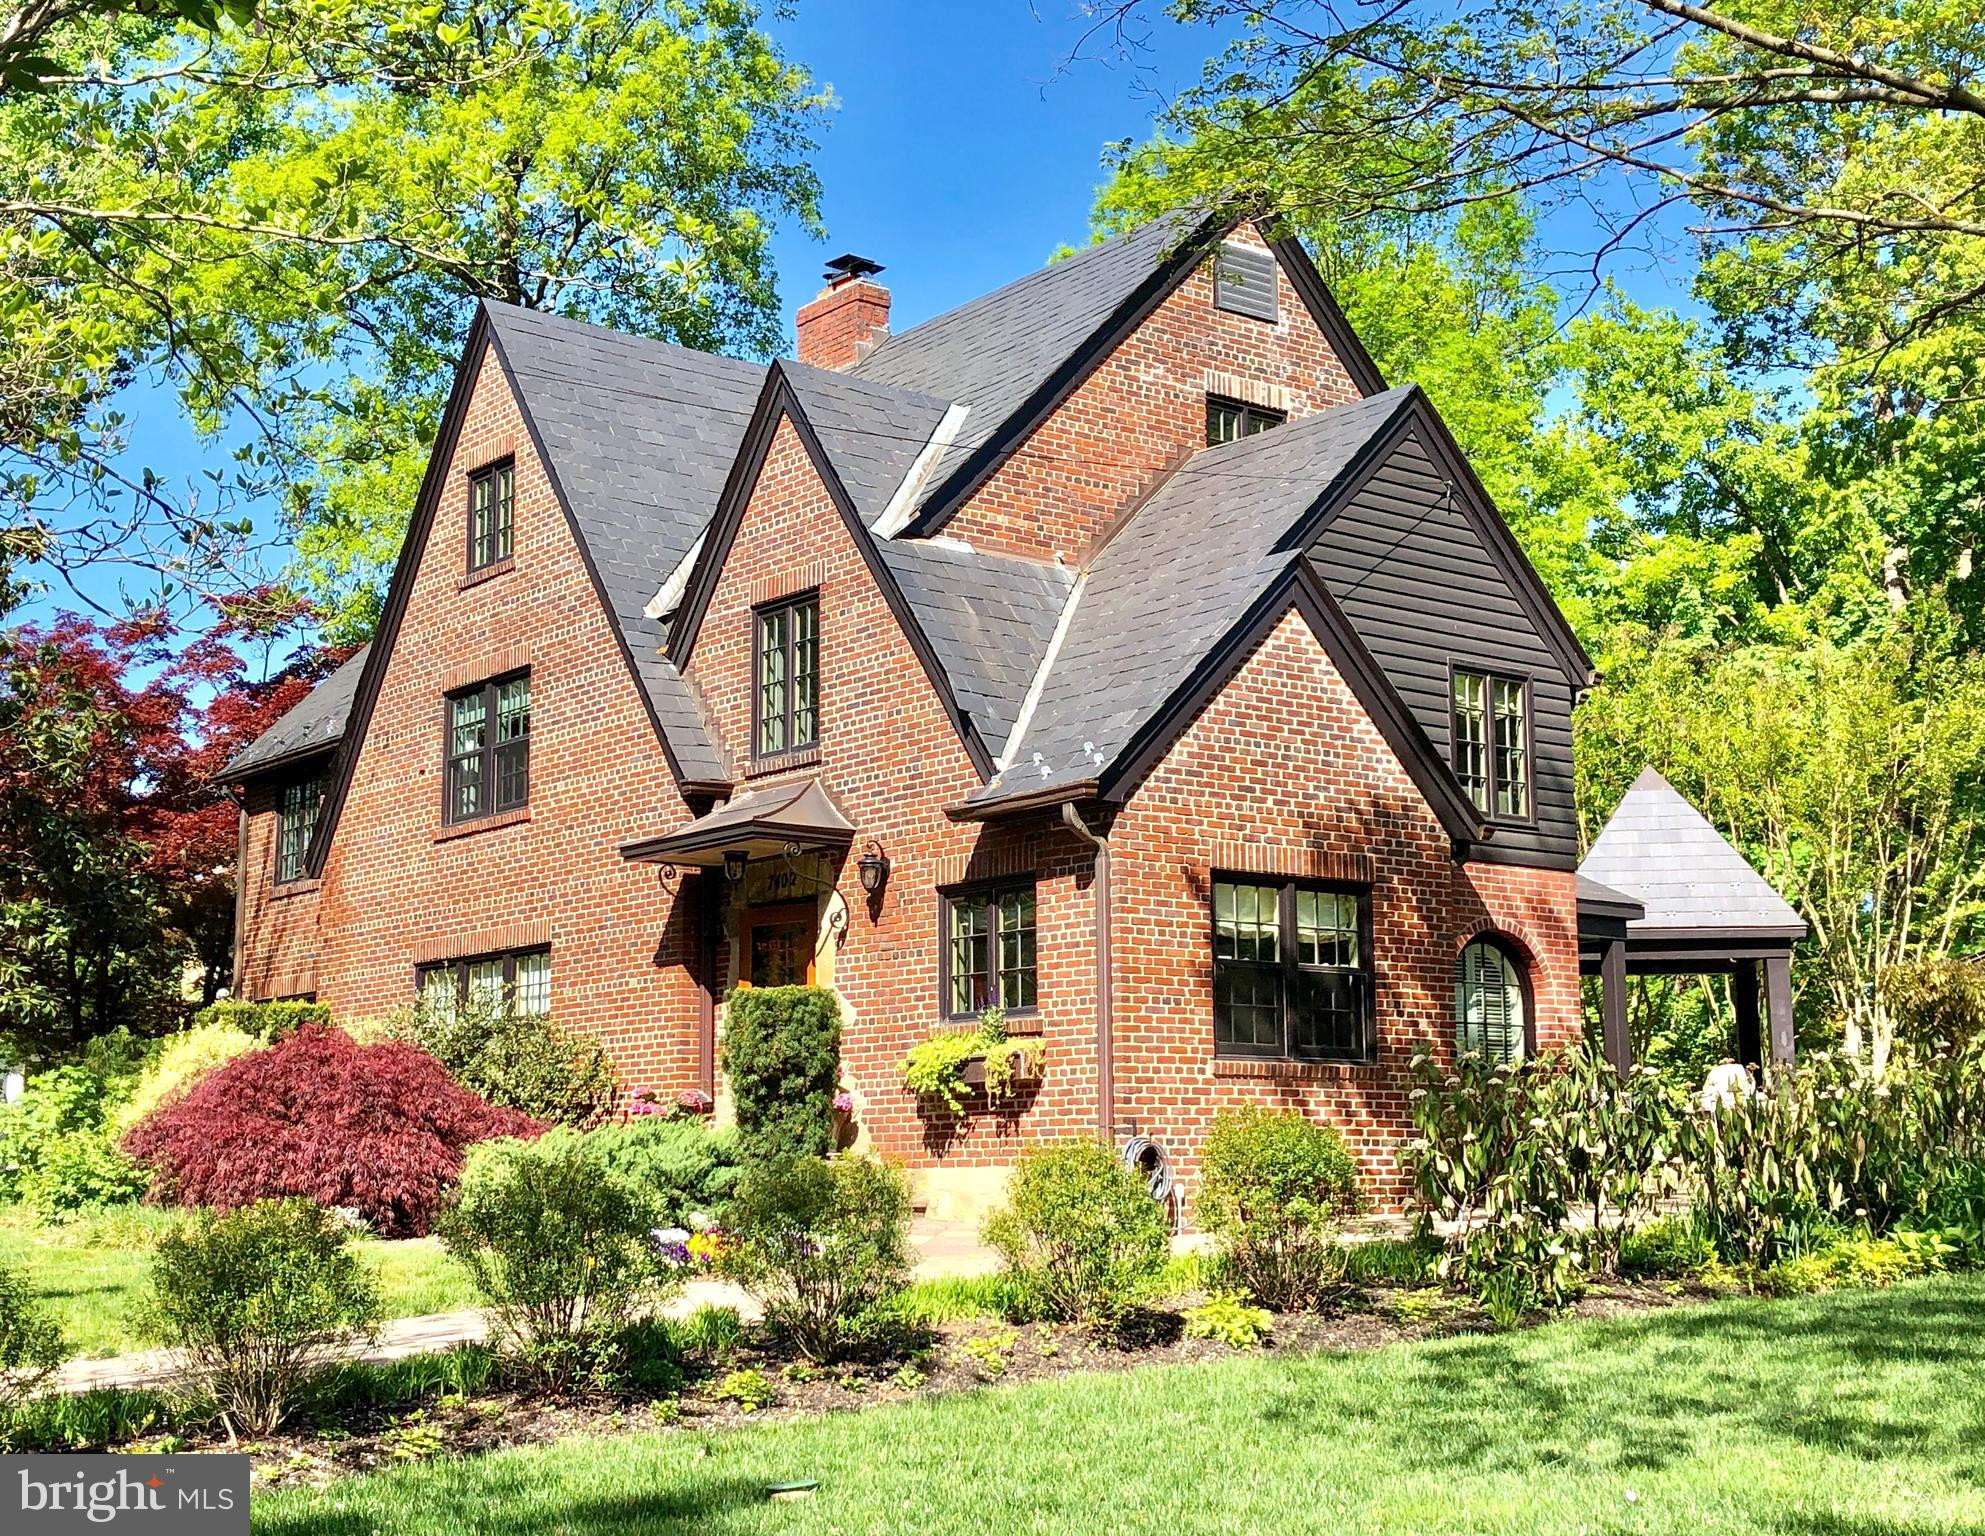 7402 MEADOW LANE, CHEVY CHASE, MD 20815